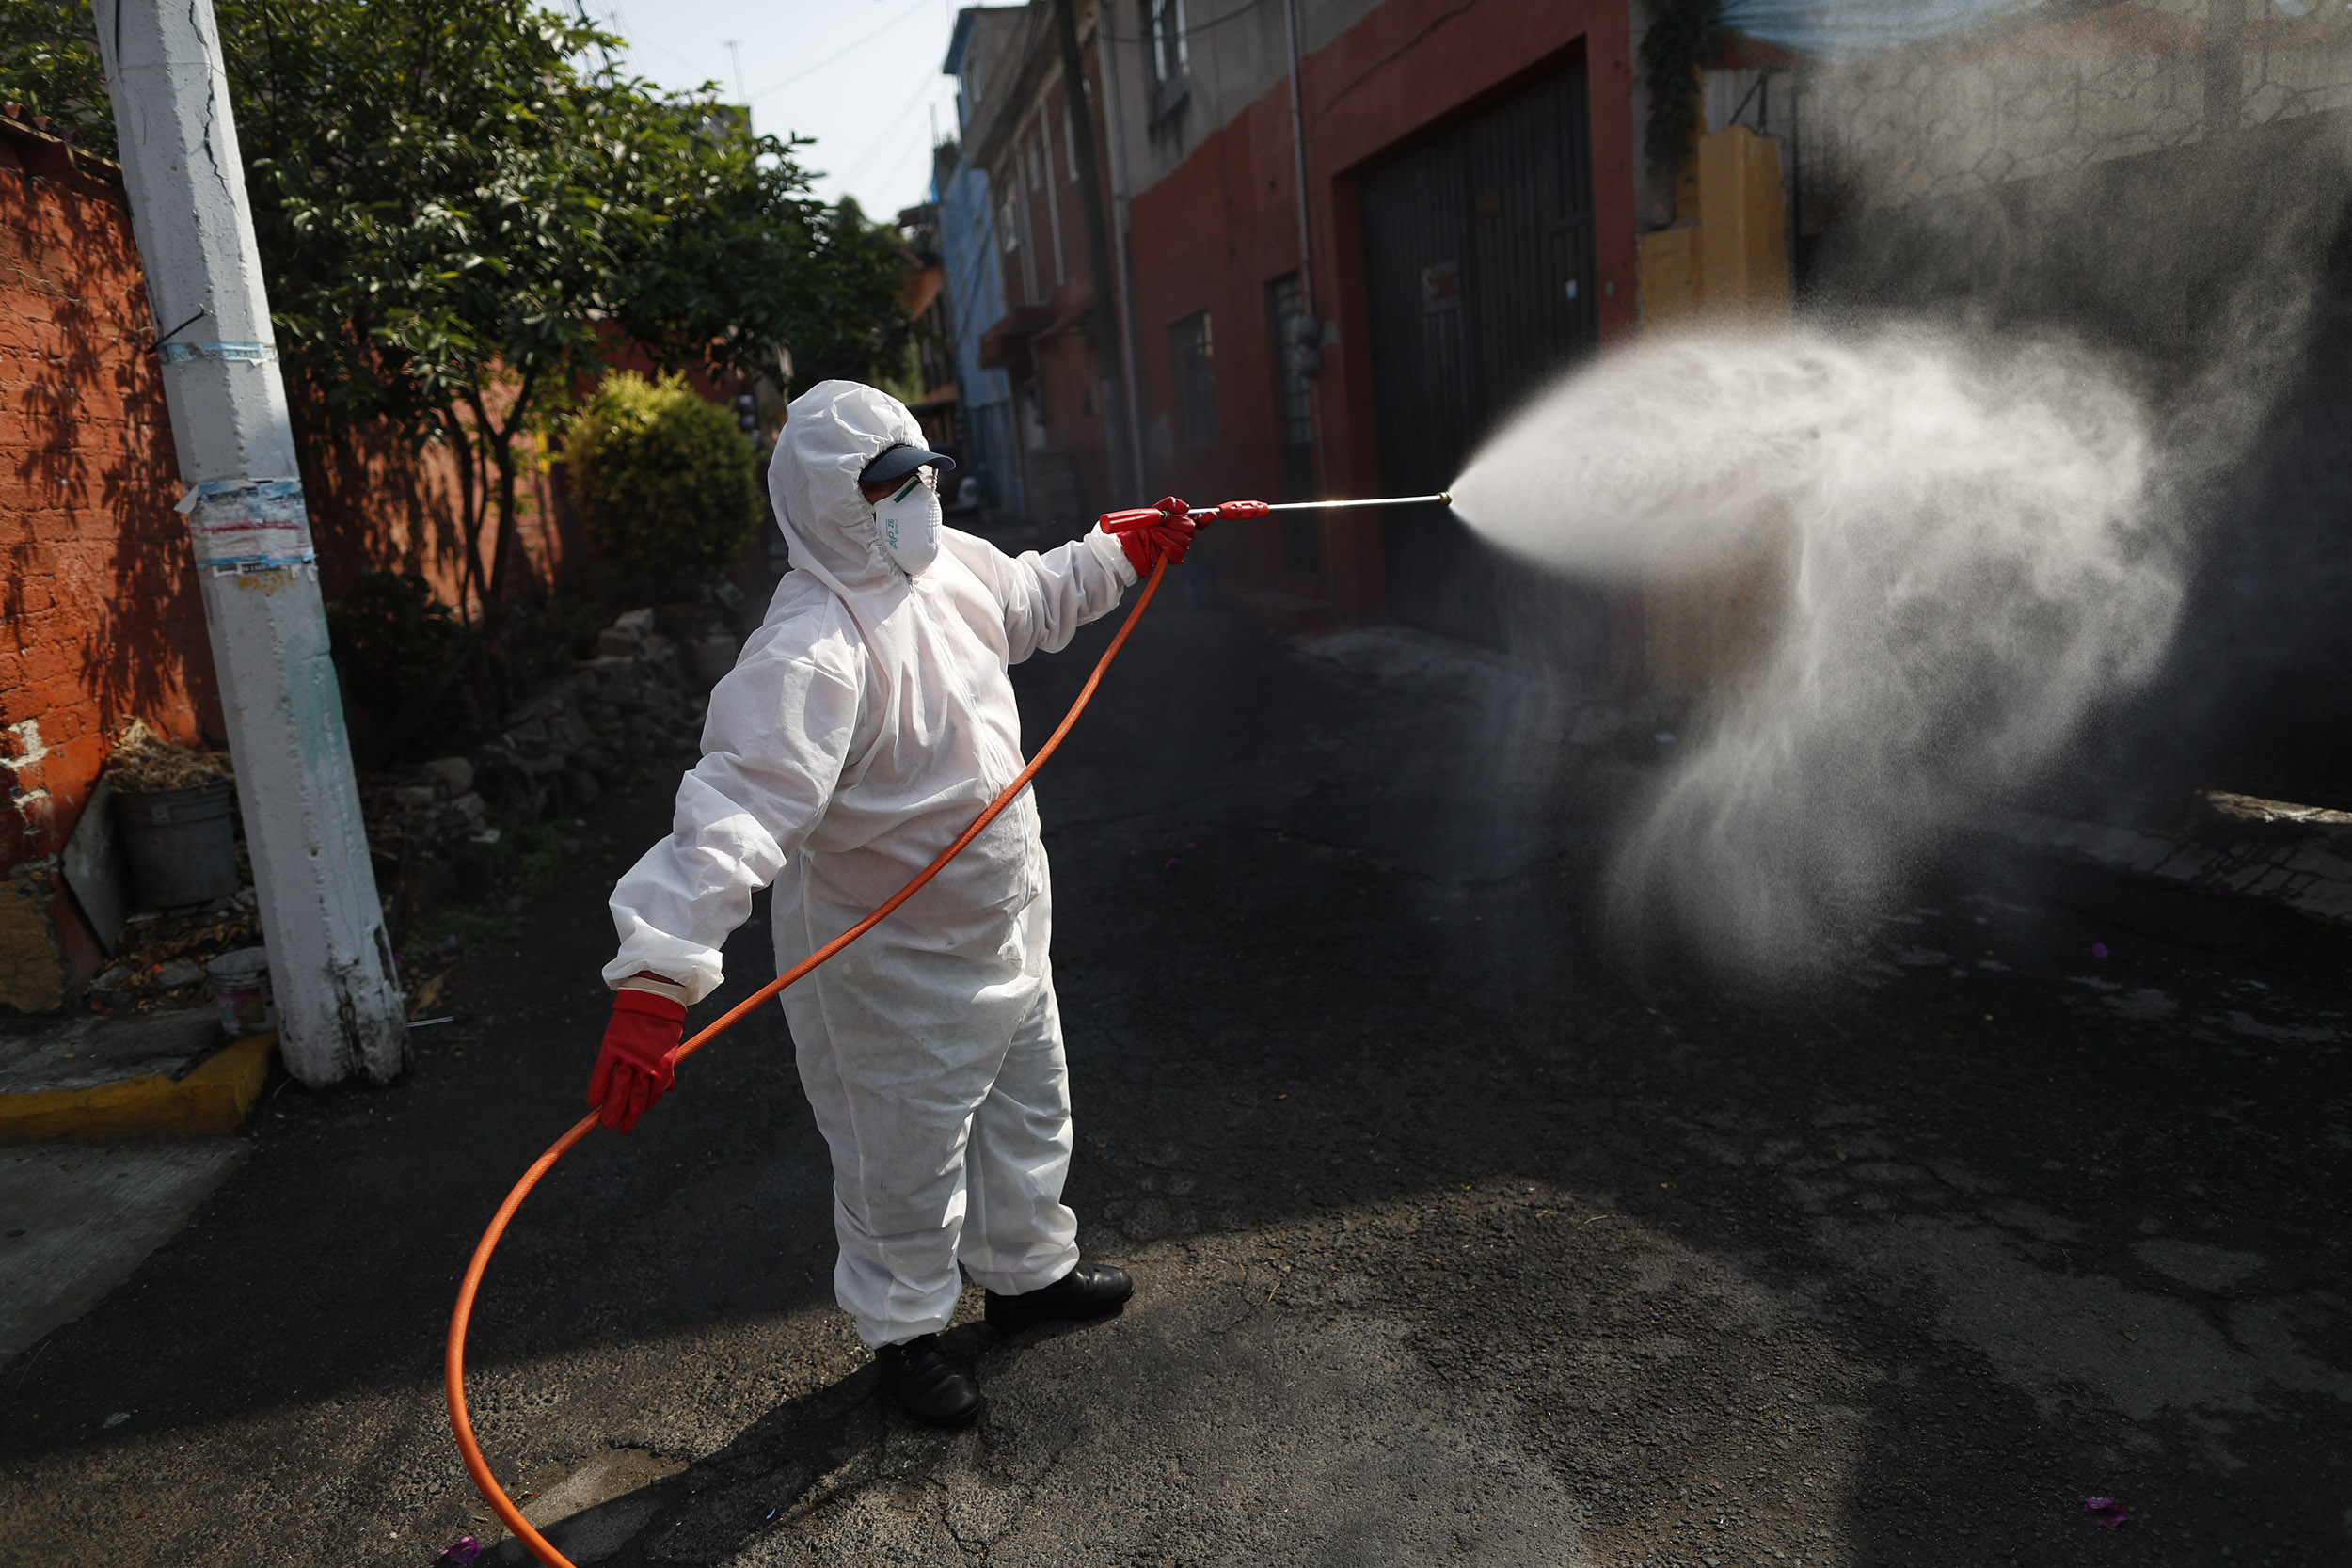 A public safety worker sprays a disinfectant solution in the El Rosario neighborhood of Mexico City, Mexico, on Friday, May 29.